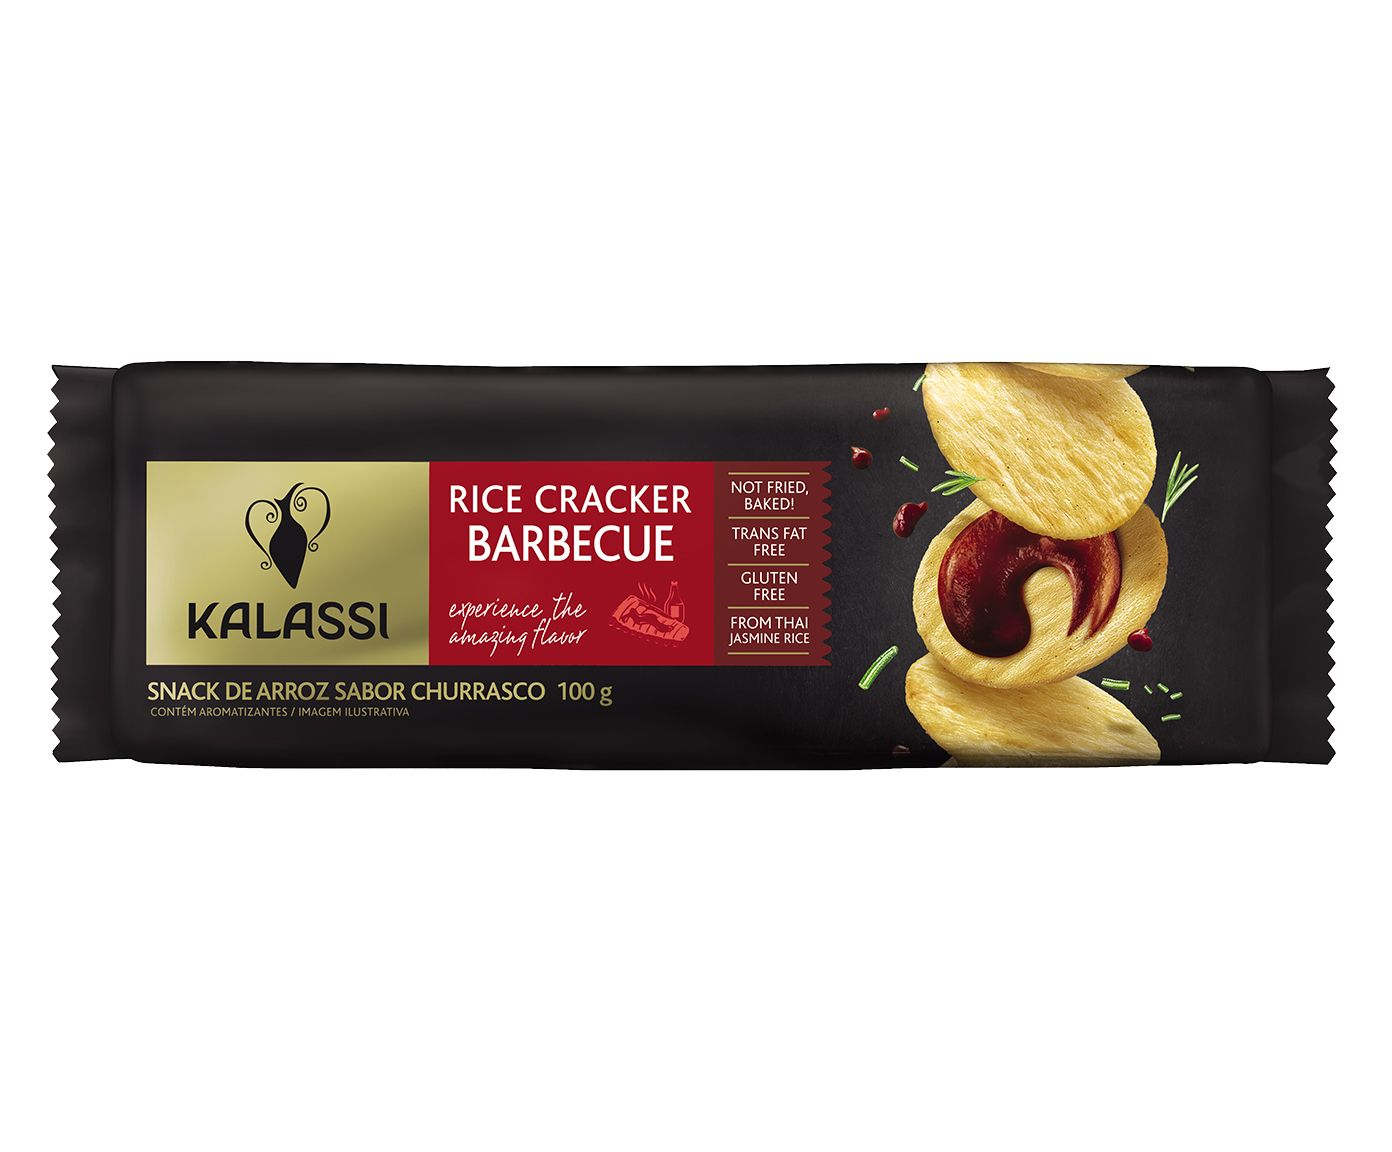 Snack Tailandês Kalassi Rice Crackers Barbecue - 100G | Westwing.com.br